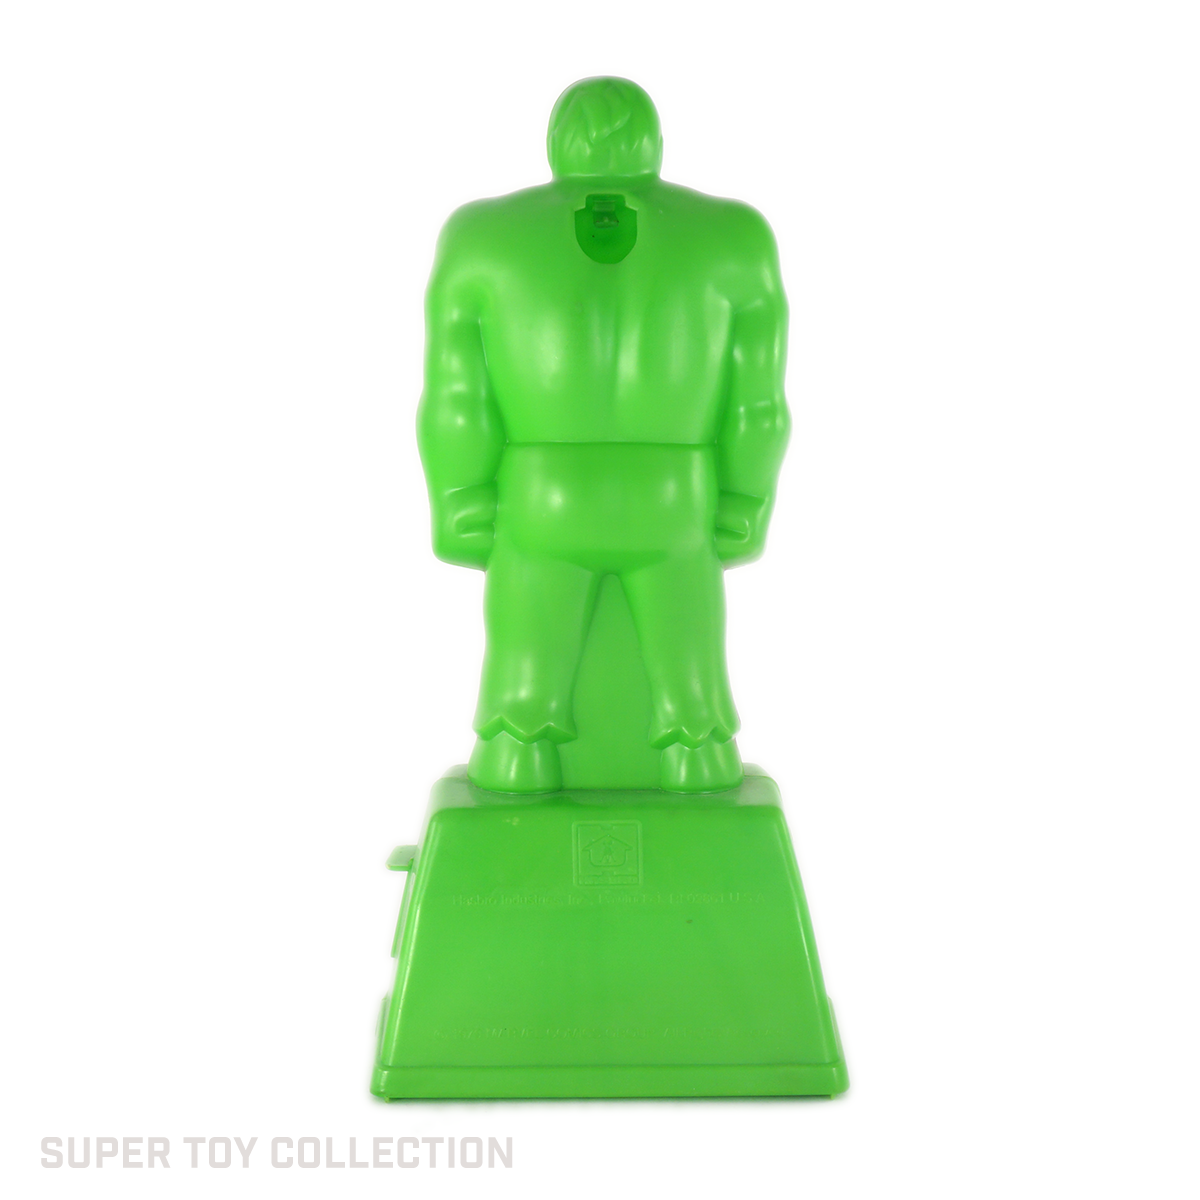 hulk gumball machine dispenser